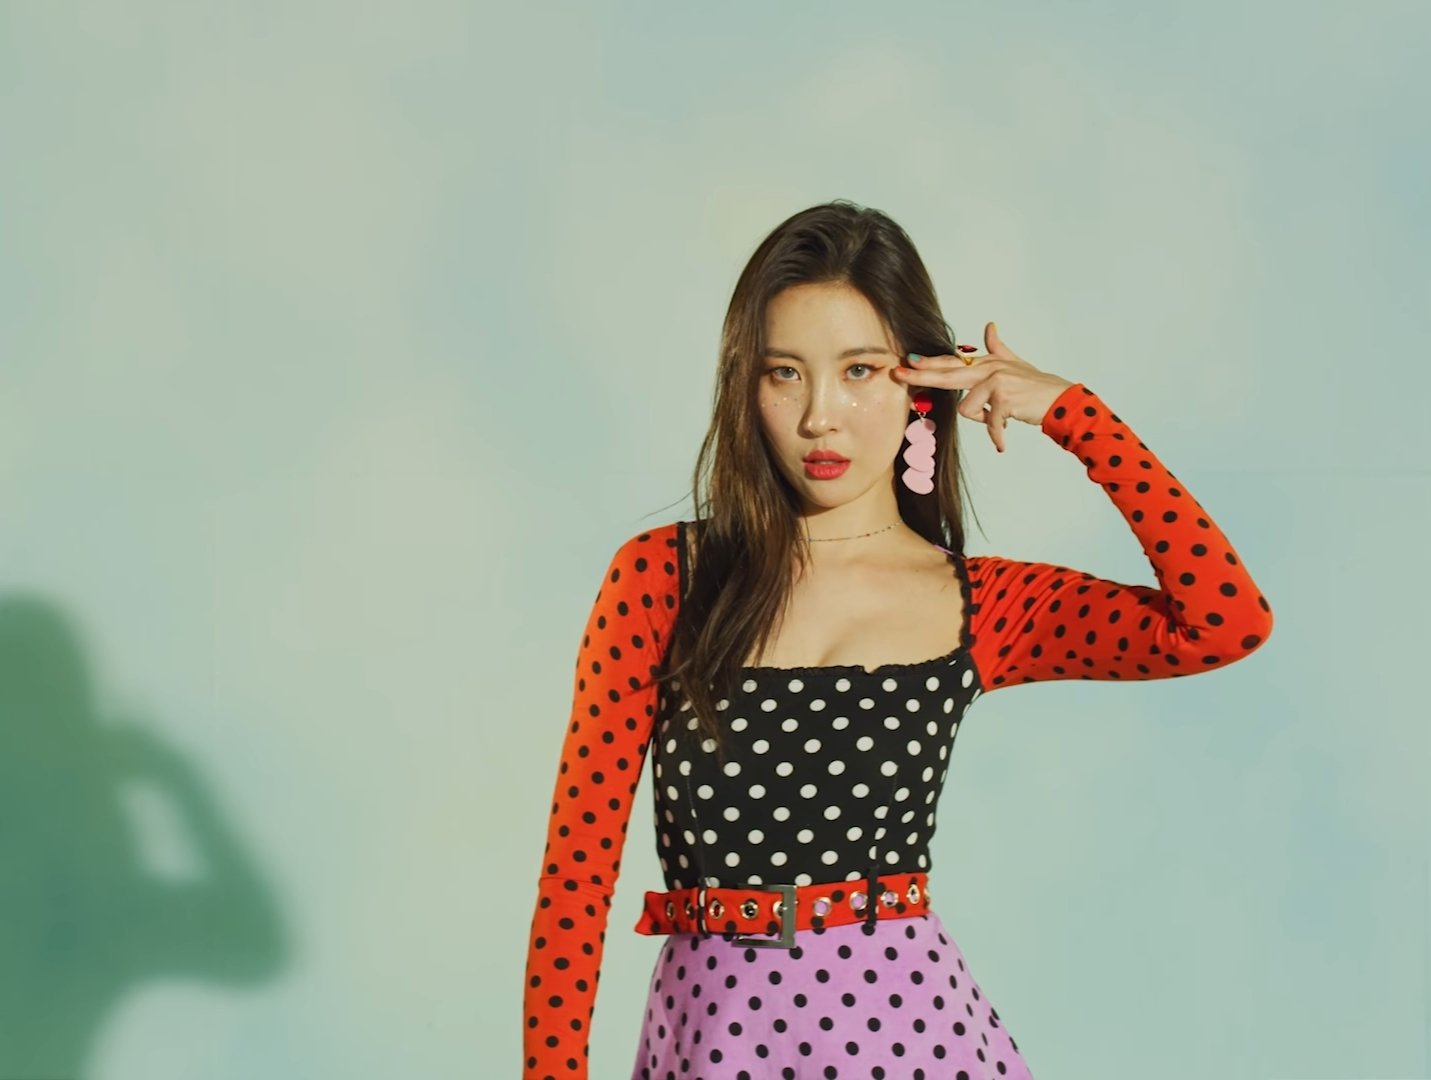 GIRLKINDs JK has you Split with latest solo MV | All